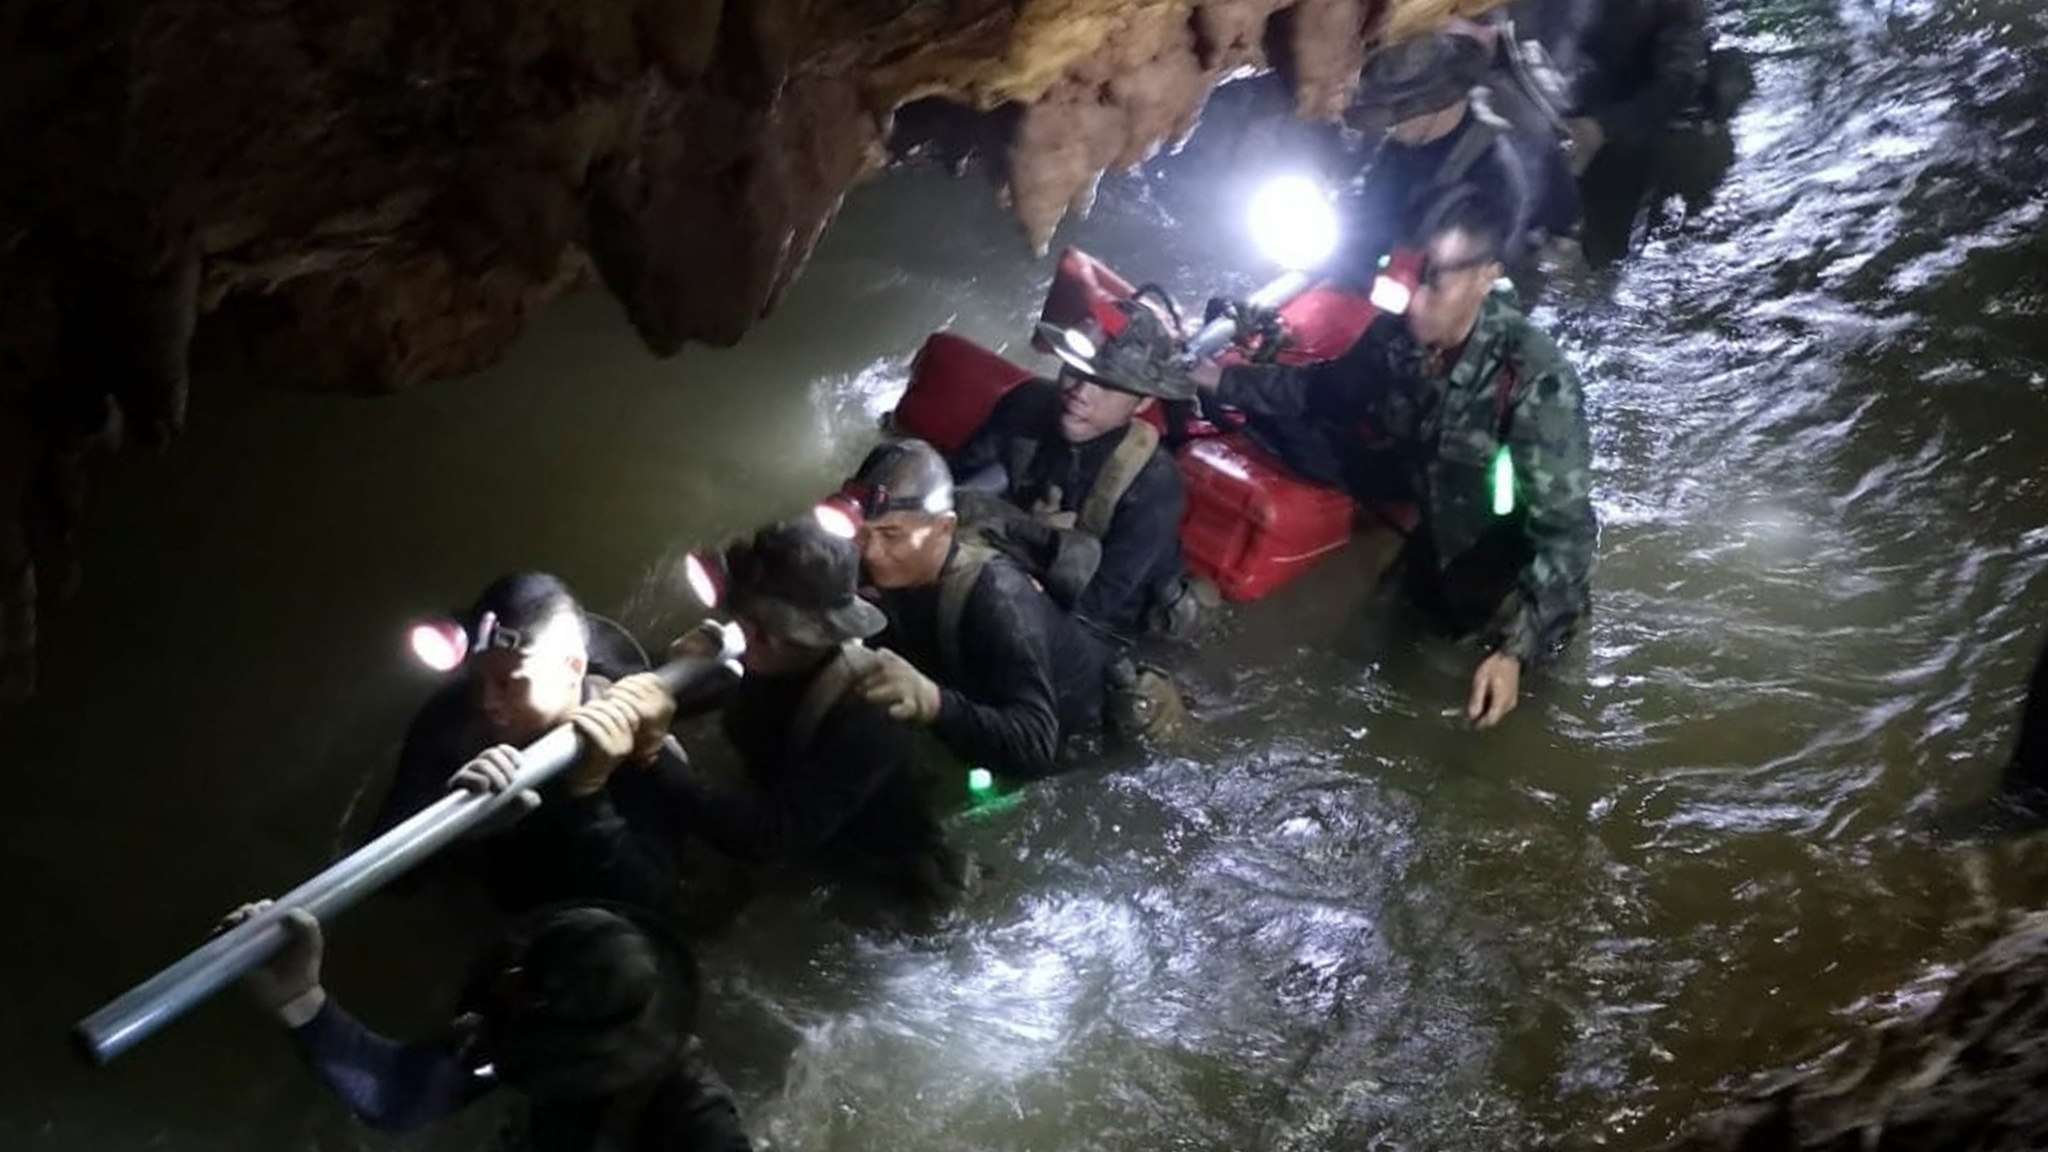 Miracle on the mountain: How 12 kids and a coach were saved from flooded Thai cave